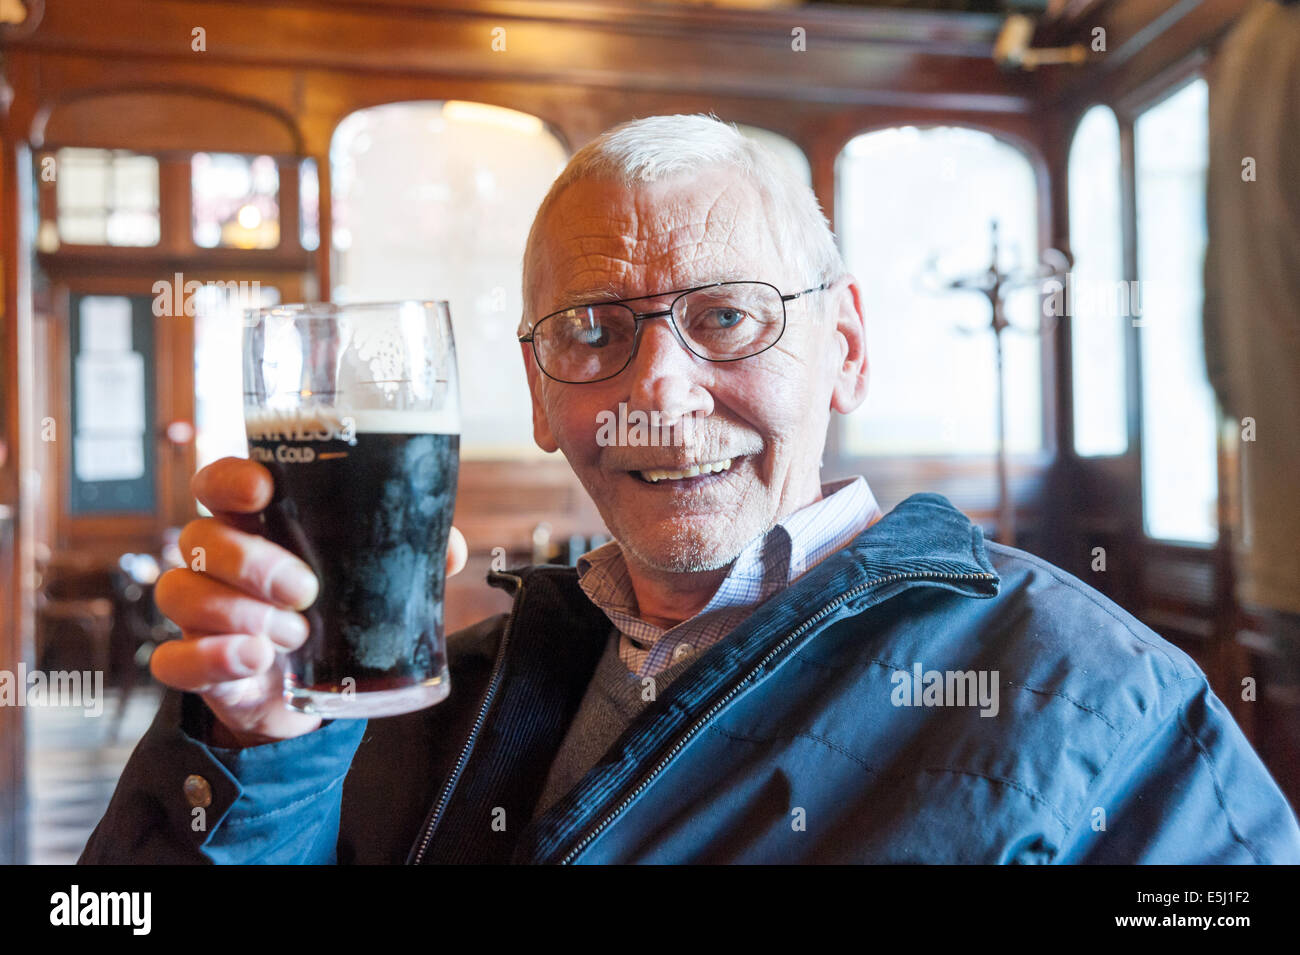 Elderly man drinking pint of Guinness in a pub, UK Stock Photo